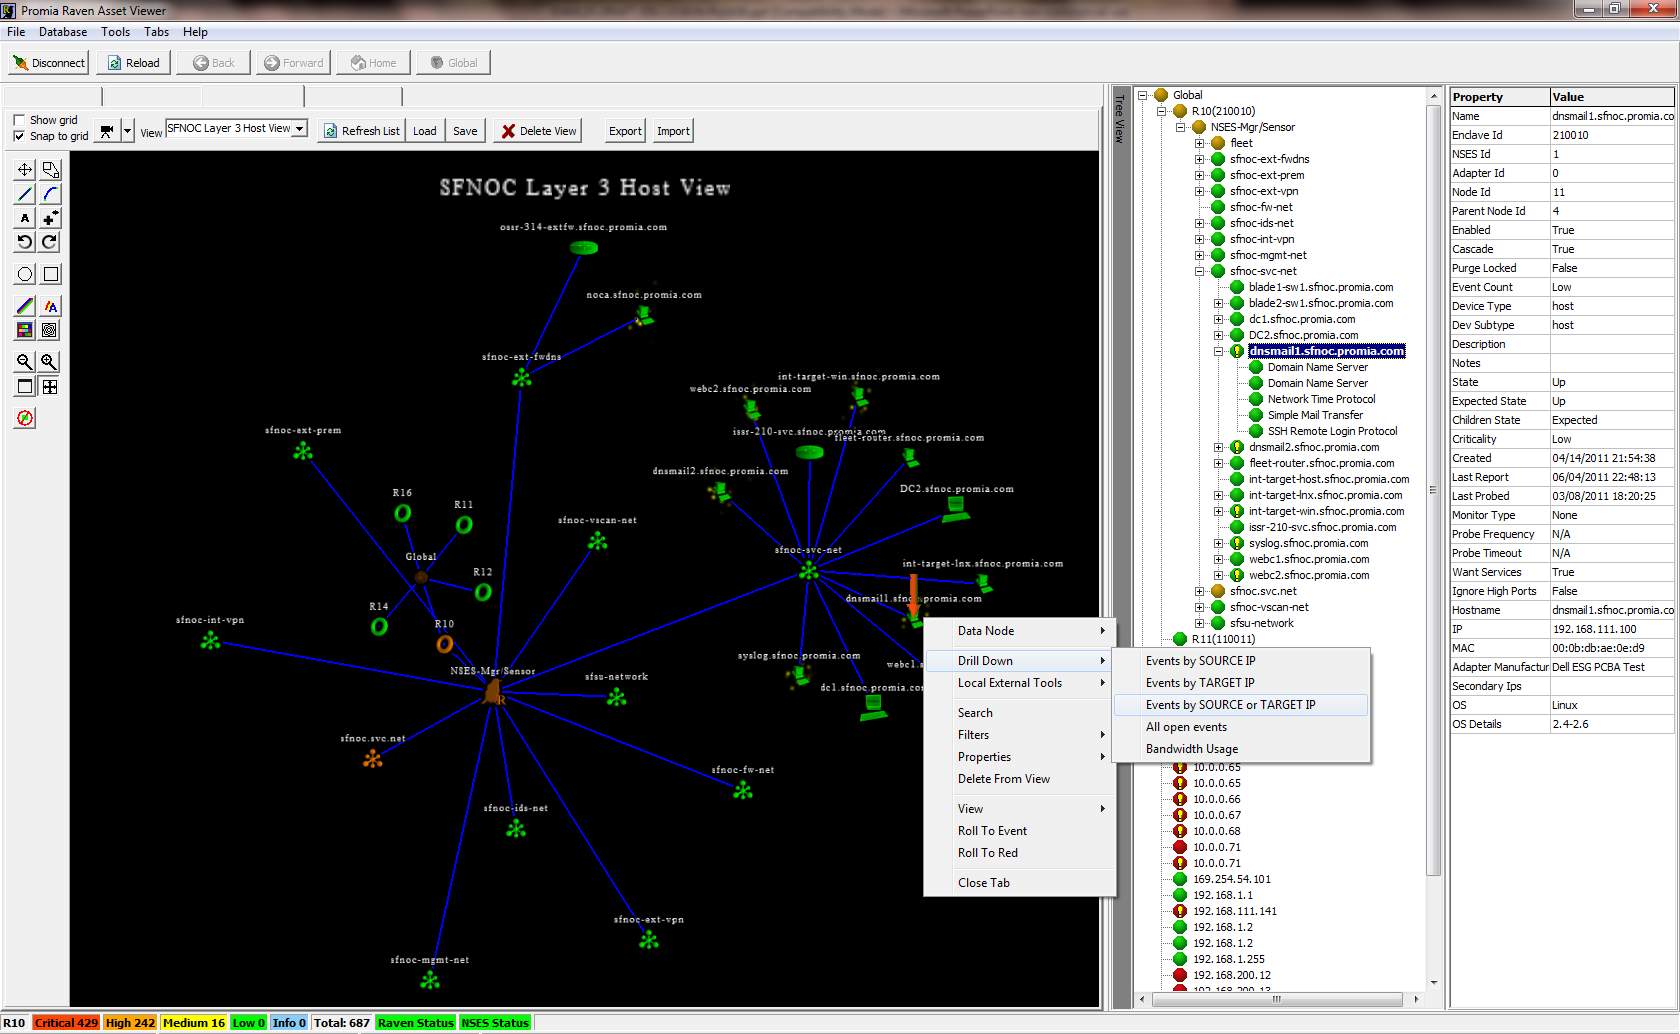 RAVEN Network Asset Viewer Using the web interface, an operator can drill down into and close incidents, see different tactical status views of detected incidents, generate reports, manage the Promia